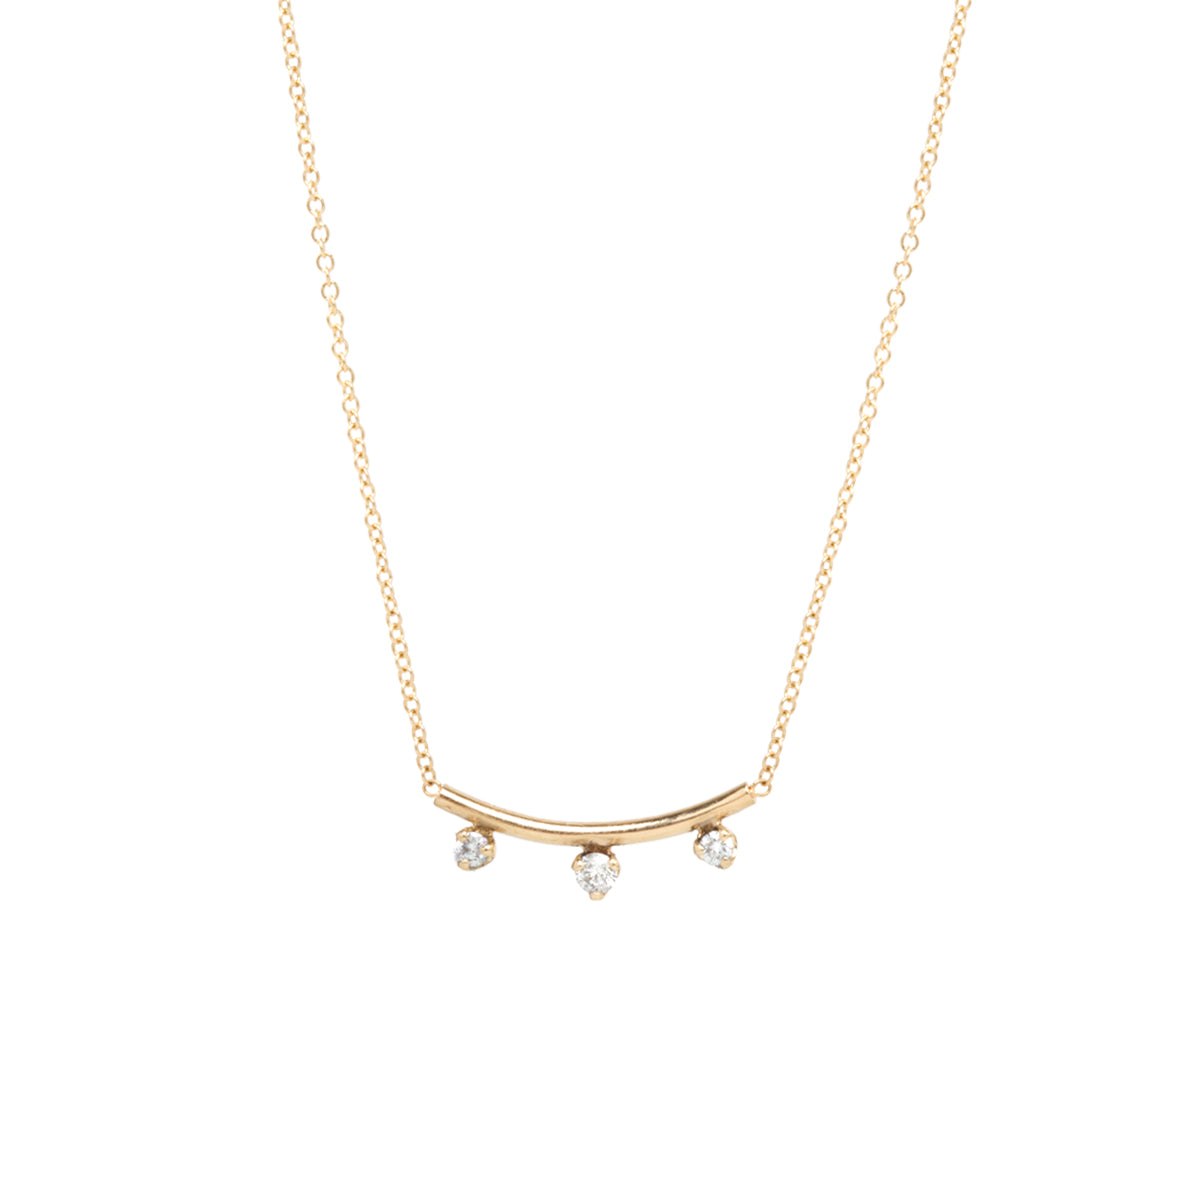 14k 3 prong diamond curved bar necklace